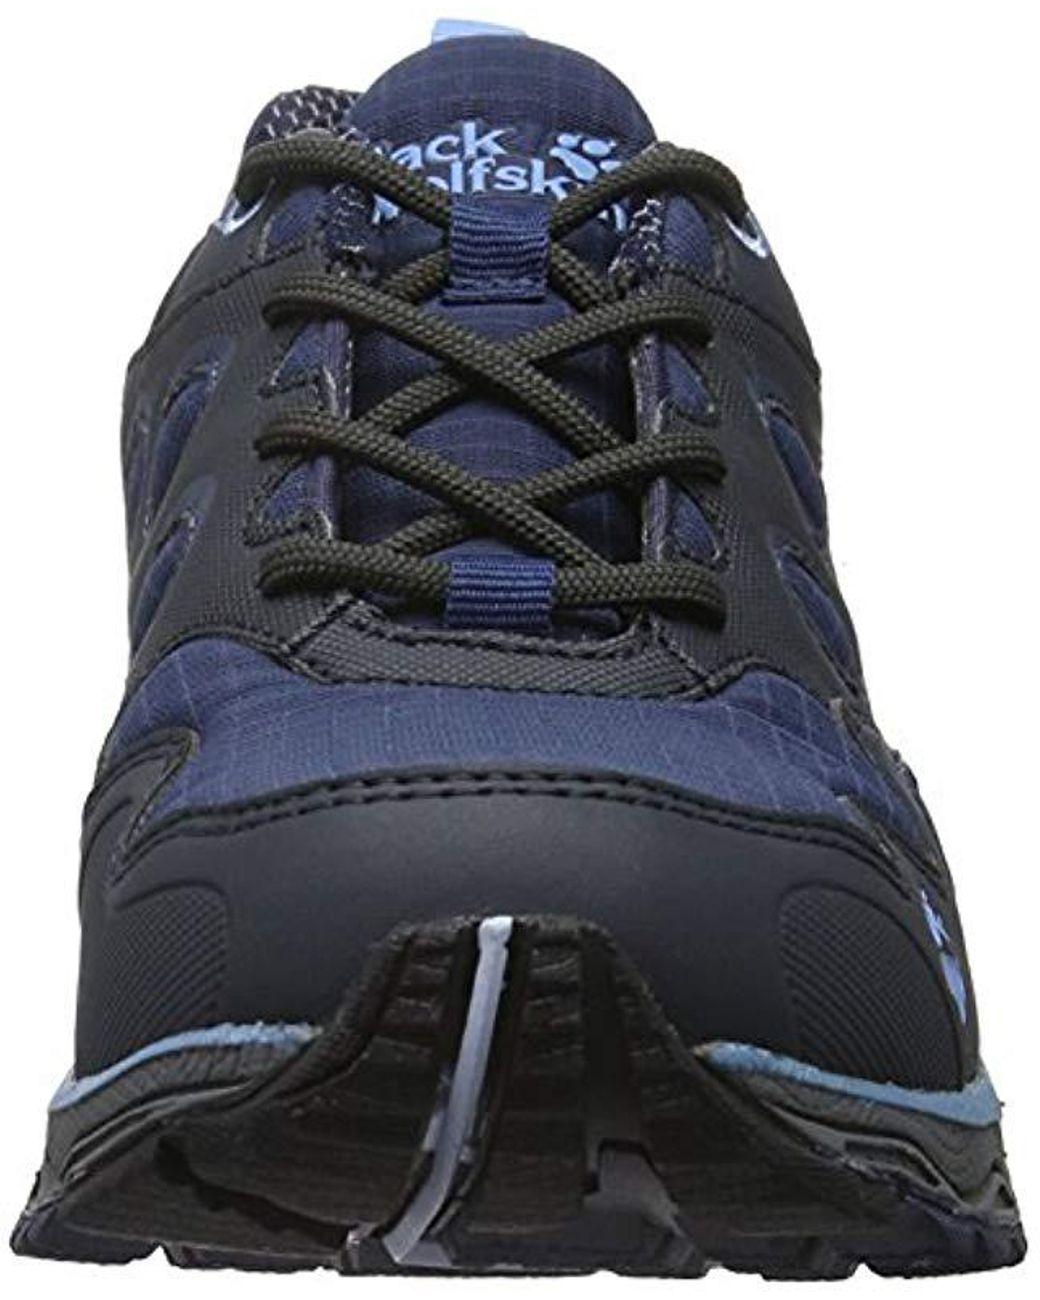 2f2f3ca0b Women's Blue Venture Fly Texapore Low W Rise Hiking Boots